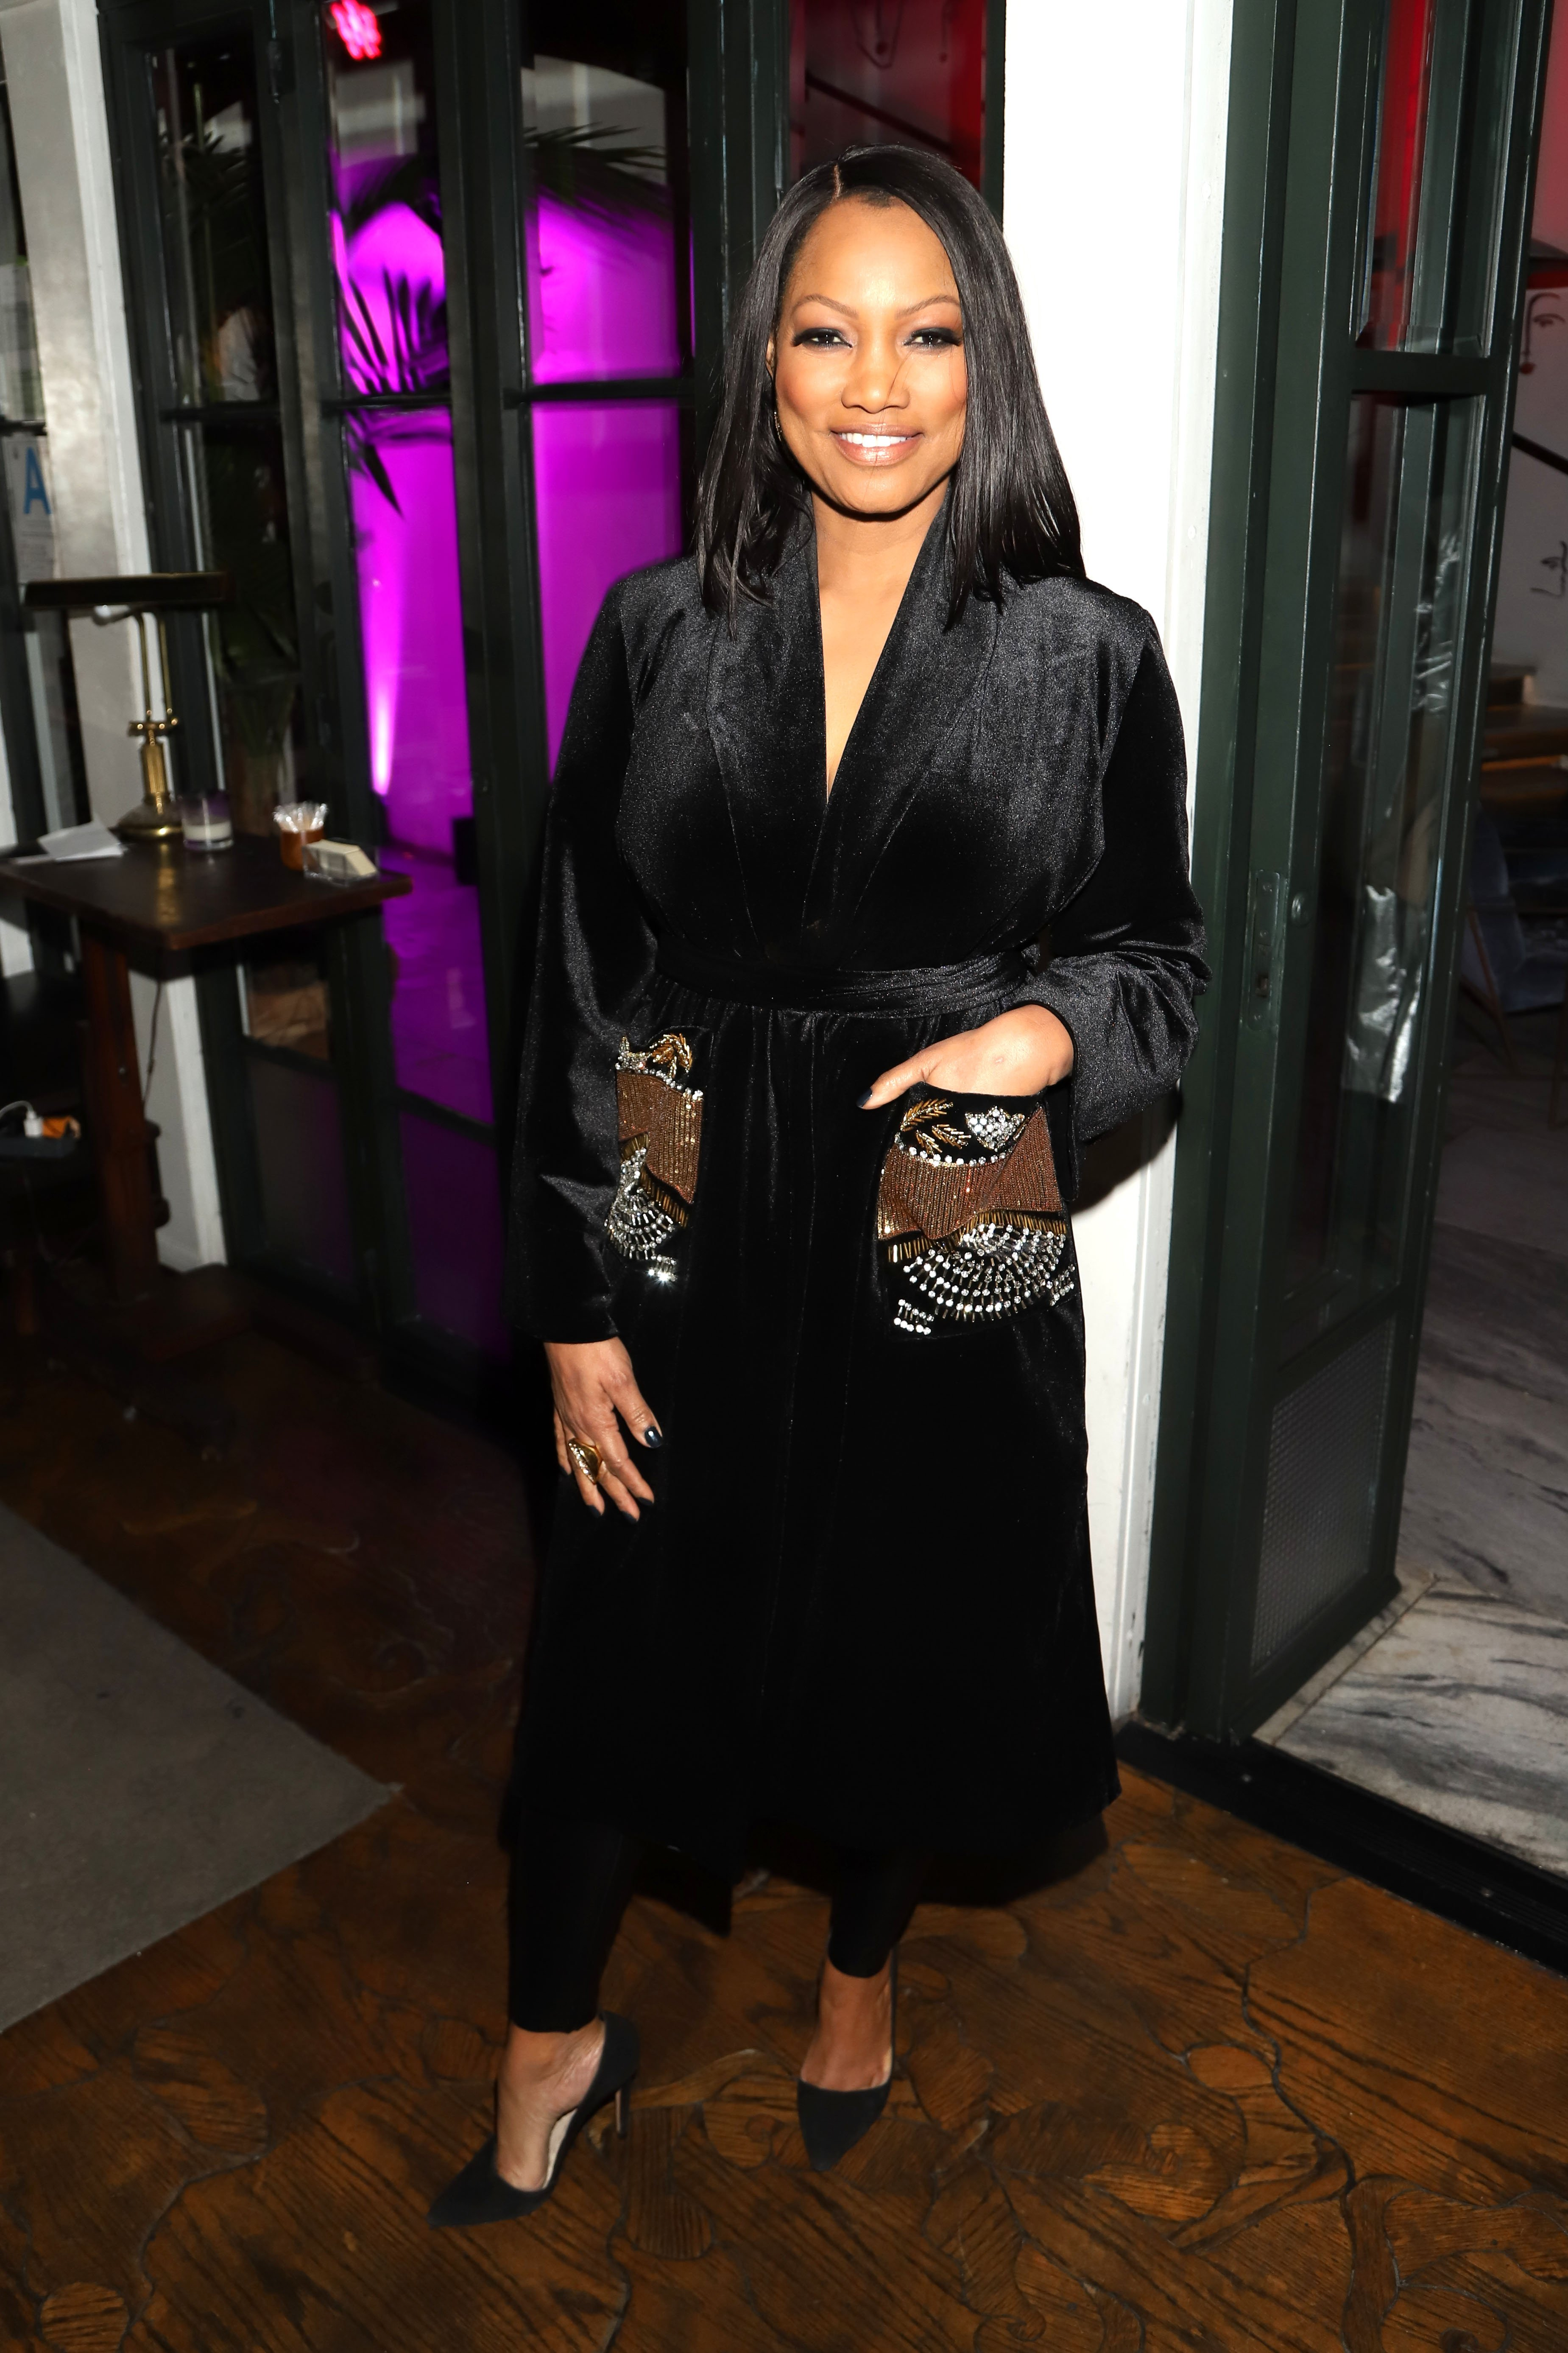 Garcelle Beauvais attends a formal event in 2019   Source: Getty Images